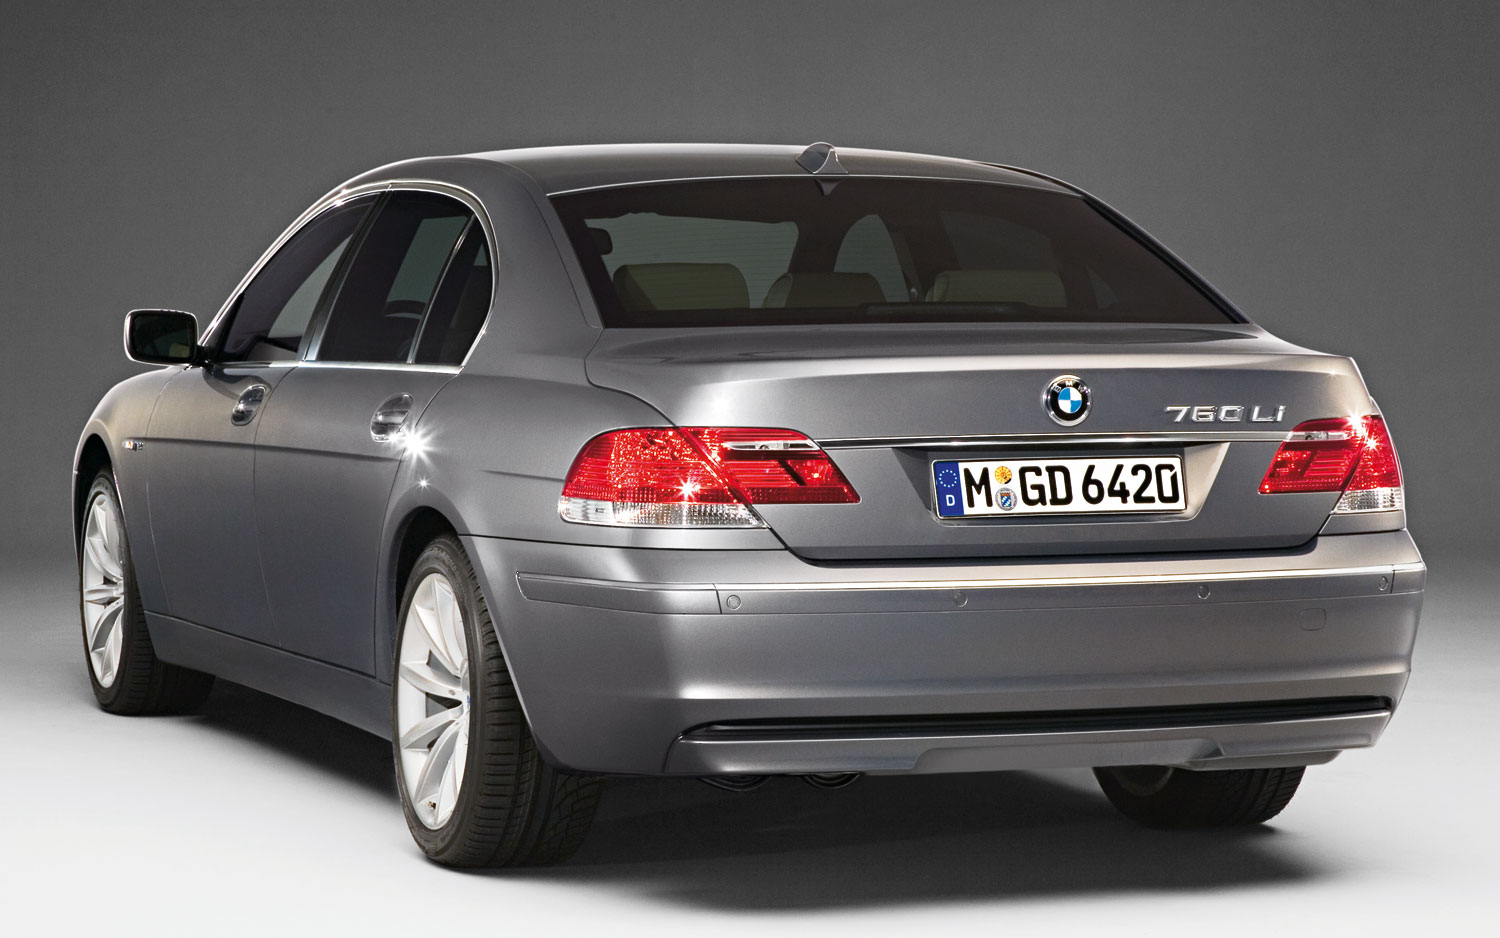 recall central 2005 2007 bmw 7 series soft close doors could inadvertently open. Black Bedroom Furniture Sets. Home Design Ideas